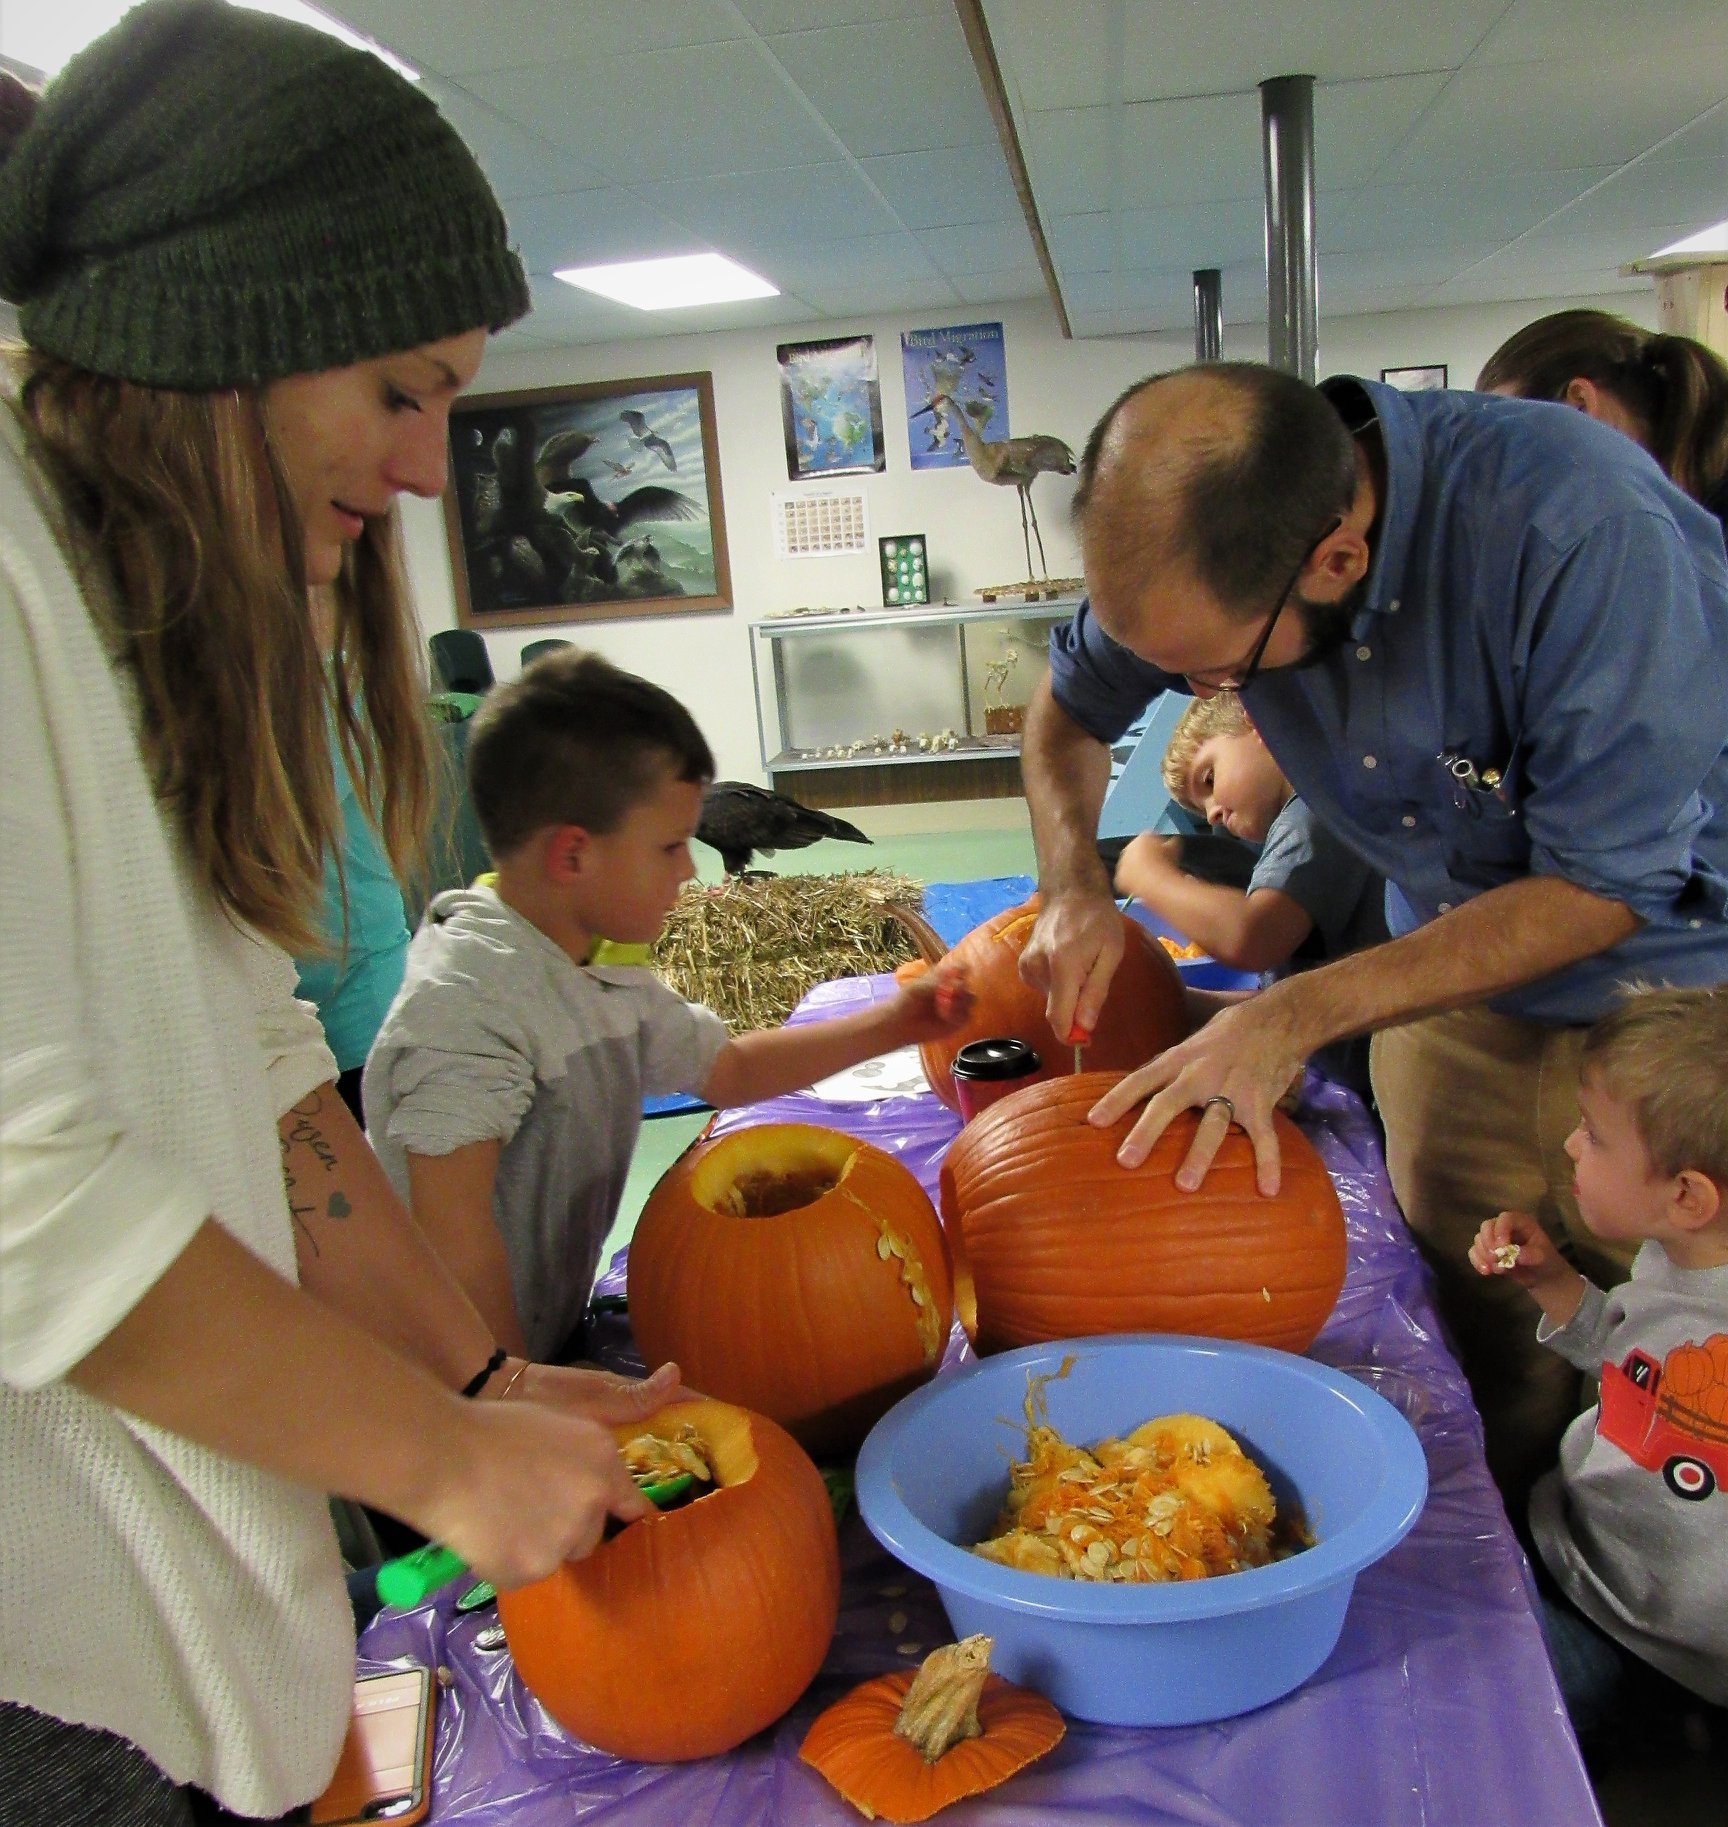 Parents also had fun getting into the pumpkin innermost parts.